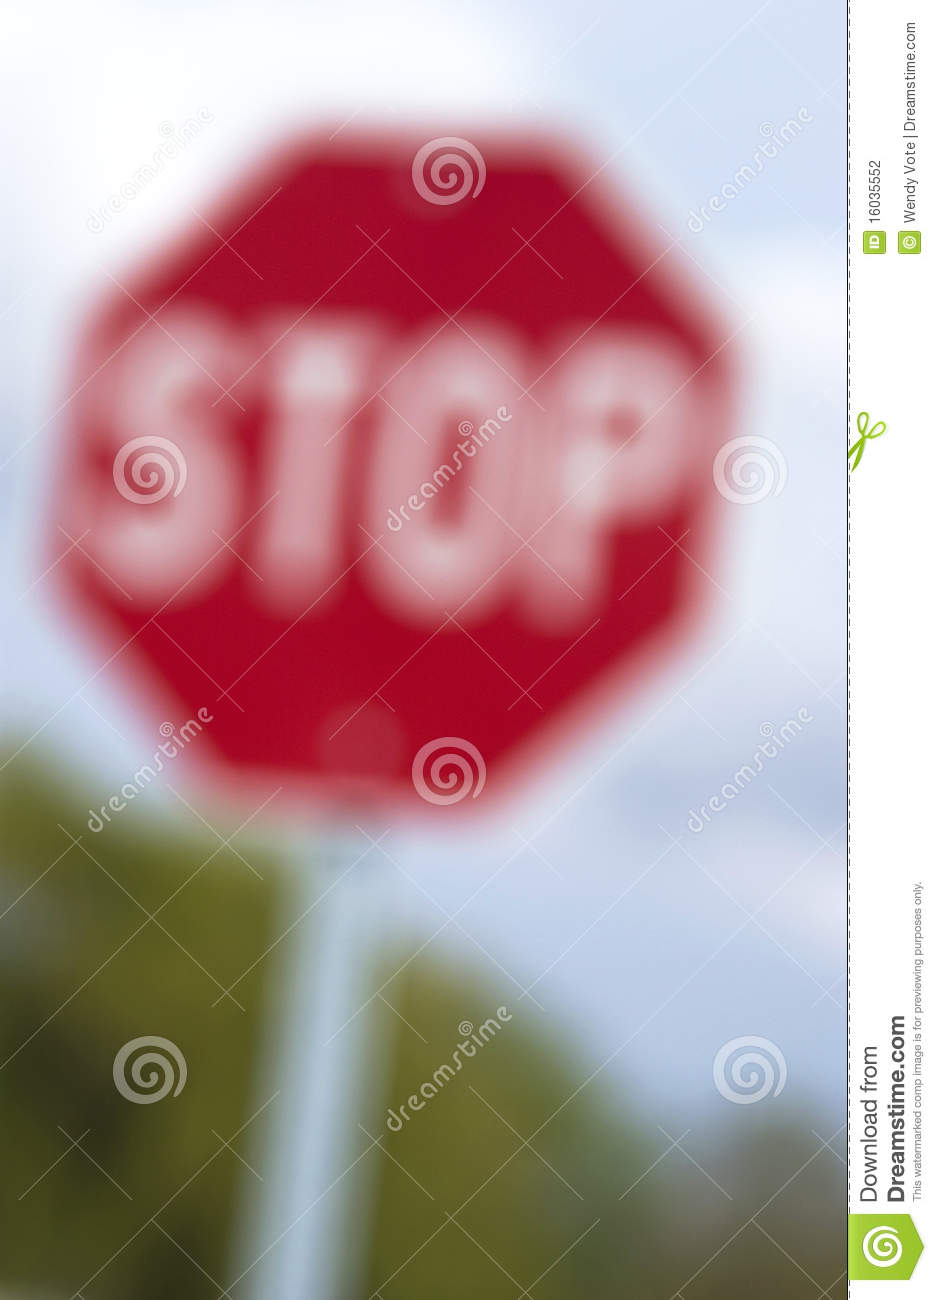 Blurry Stop Sign Stock Photography Image 16035552